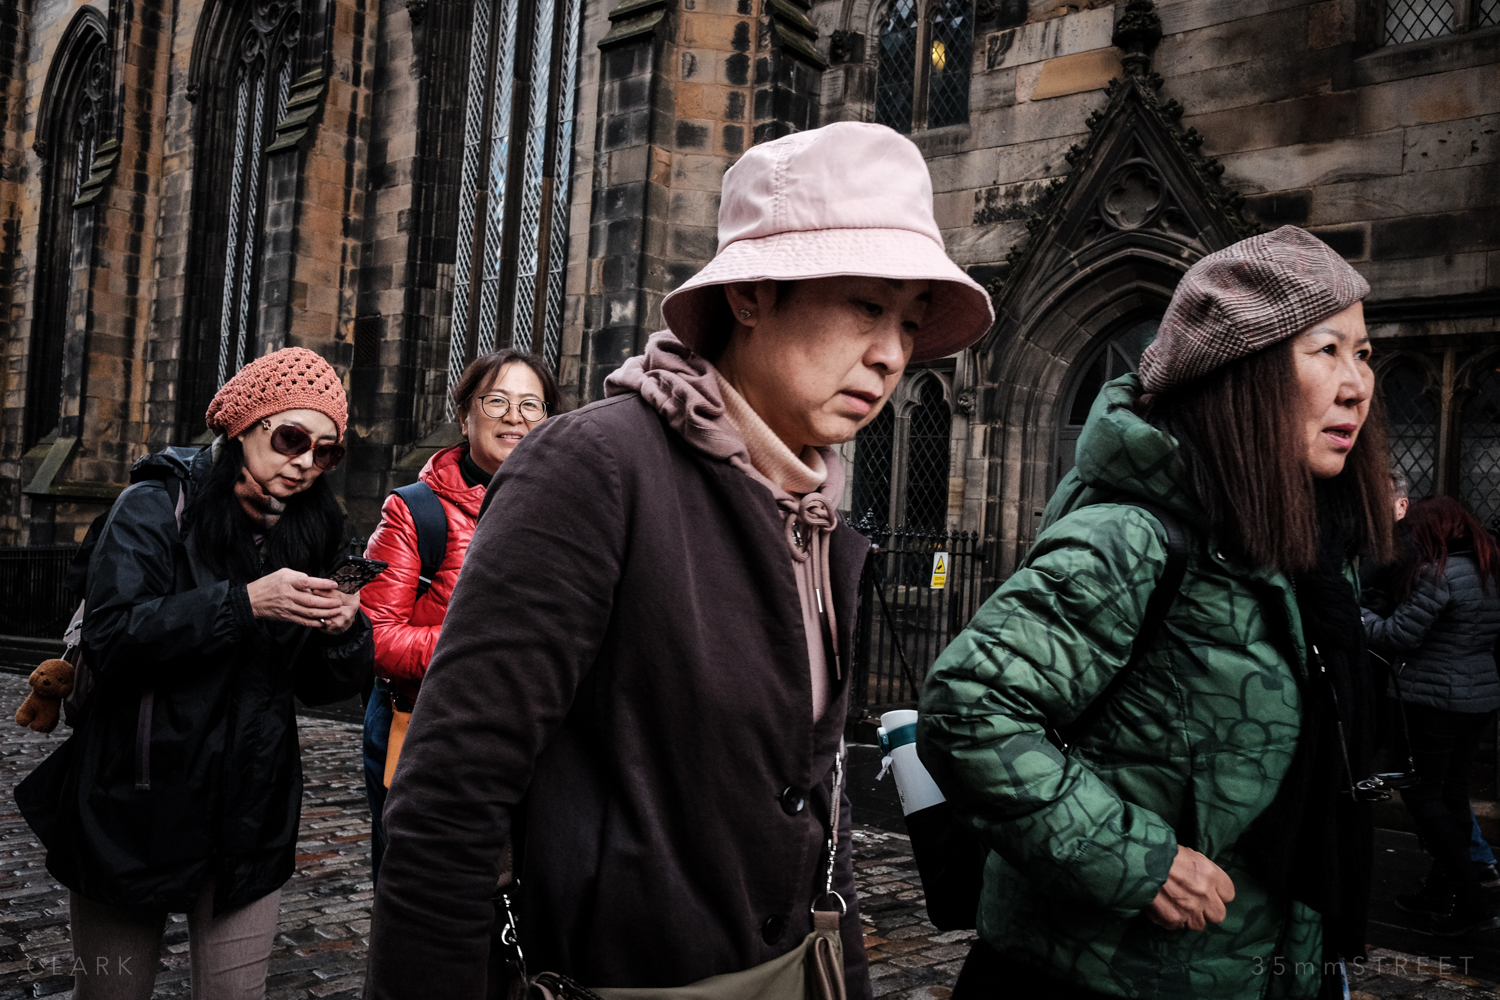 002_35mmStreet-Edinburgh-Street-Photography-20190404.jpg